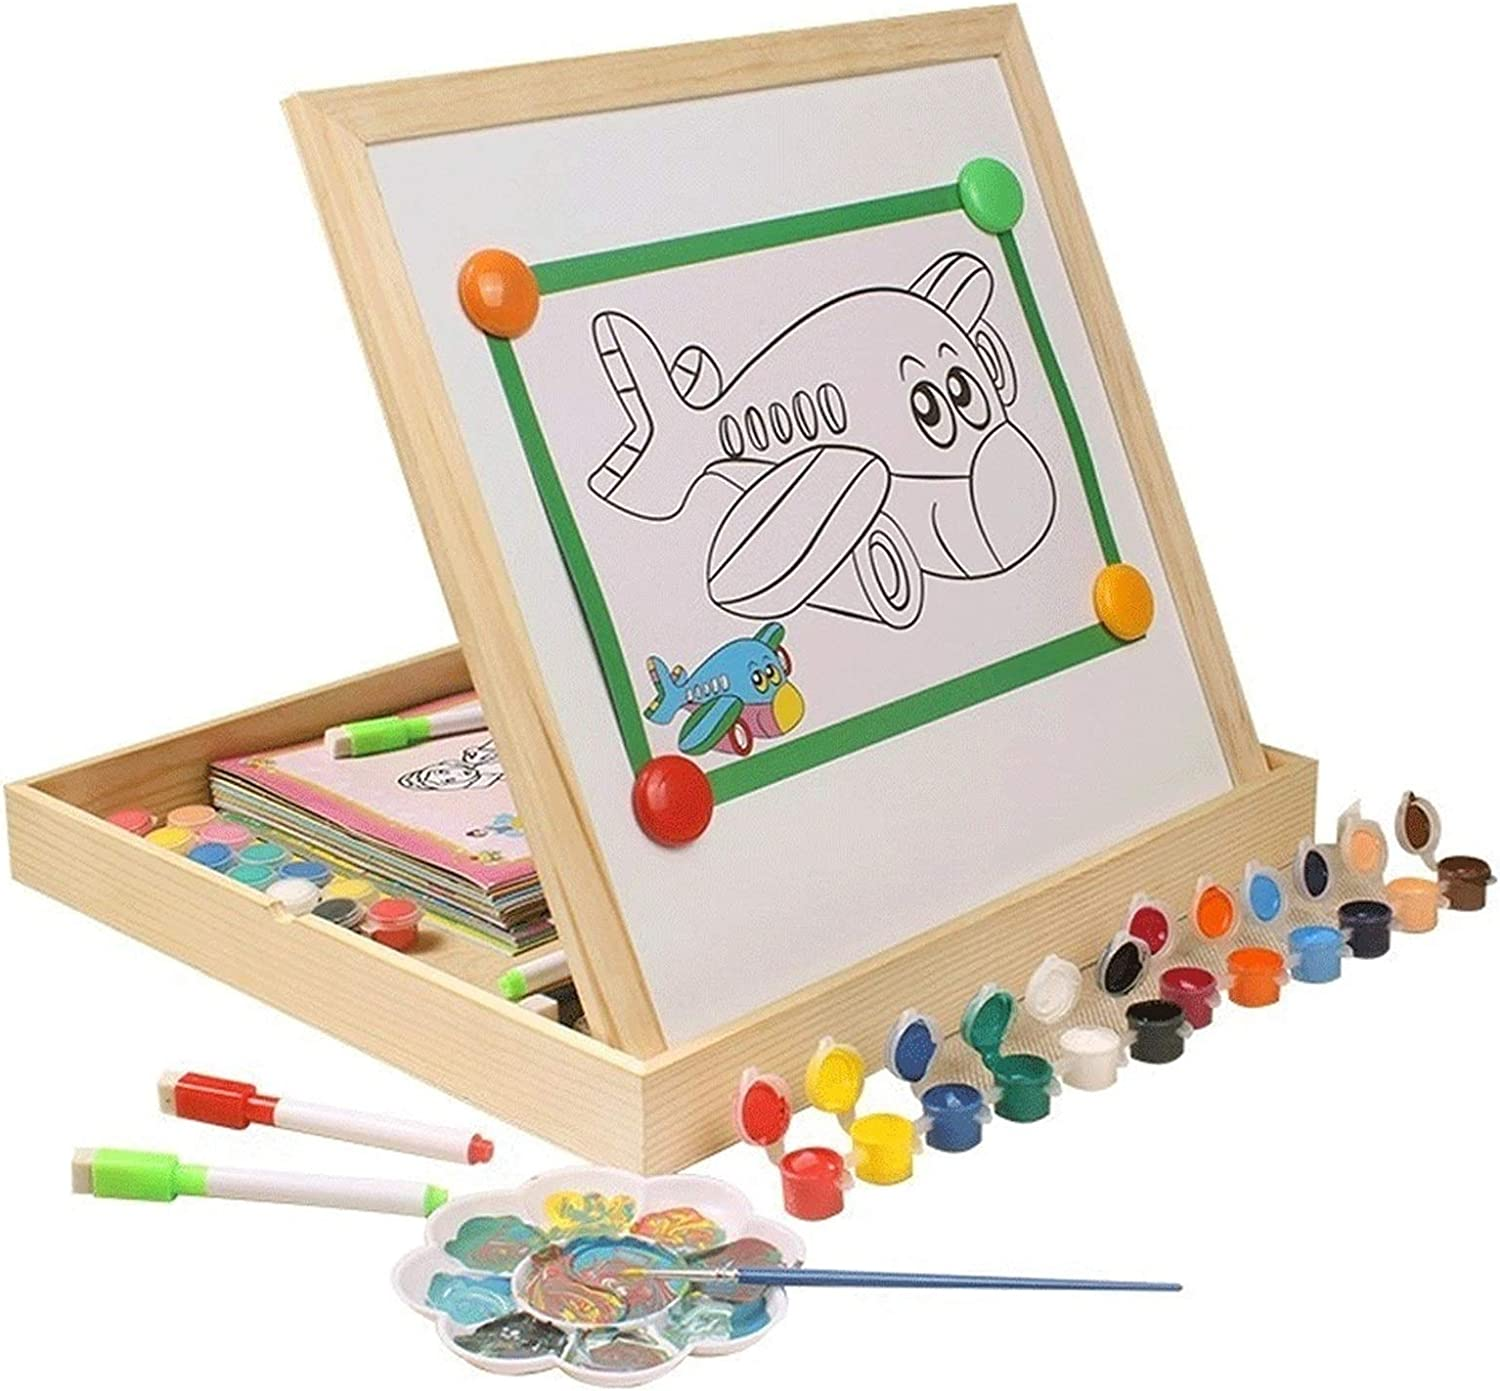 LICHUAN Super intense SALE Kid's Easel Wooden Educational Credence P Toys Art Magnetic